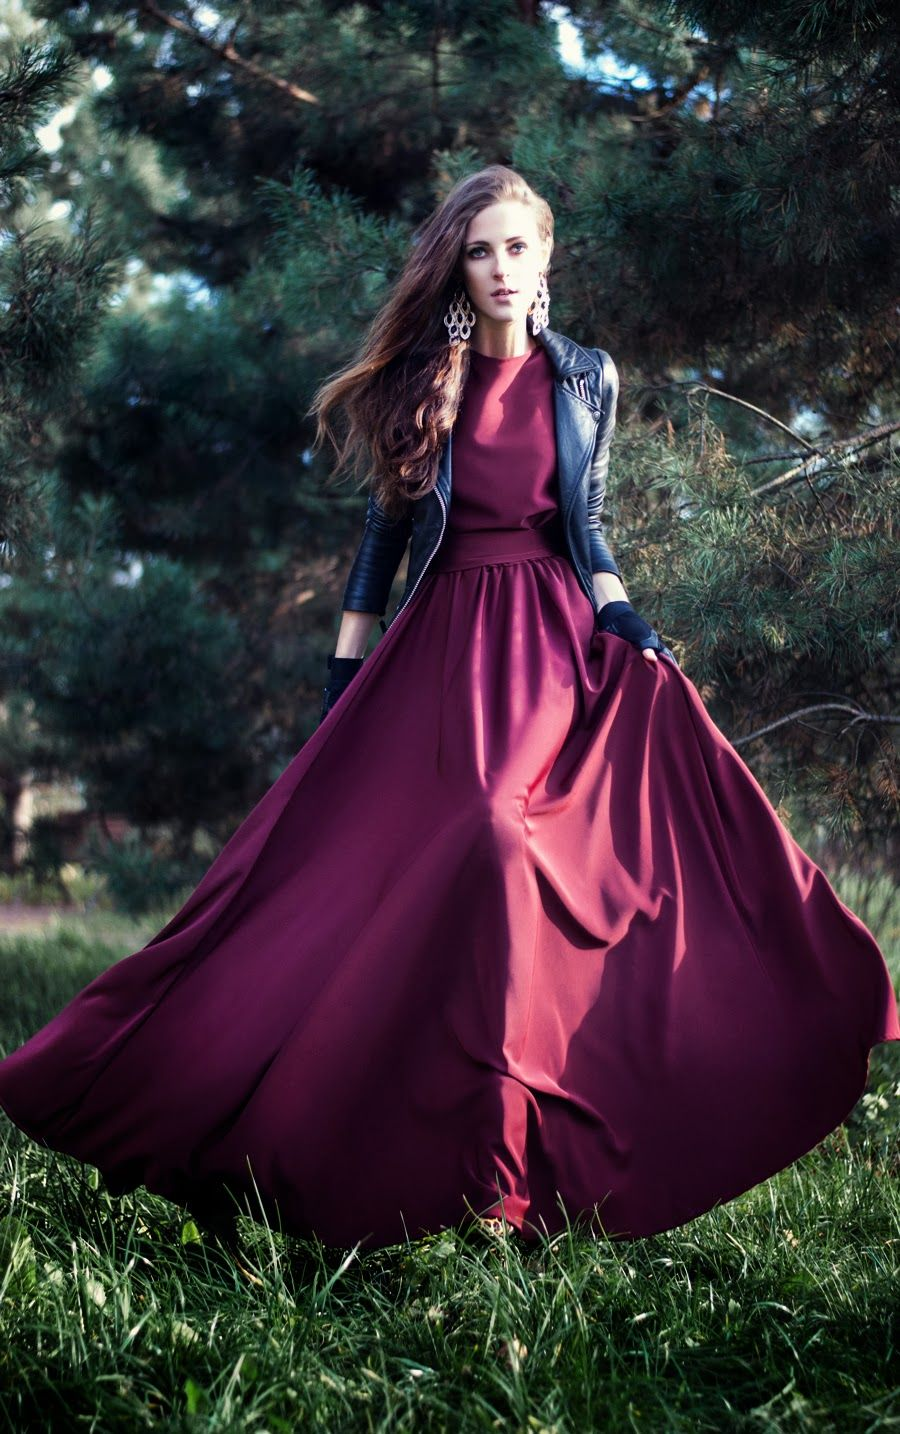 Red dress burgundy leather jacket and dress outfit ootd